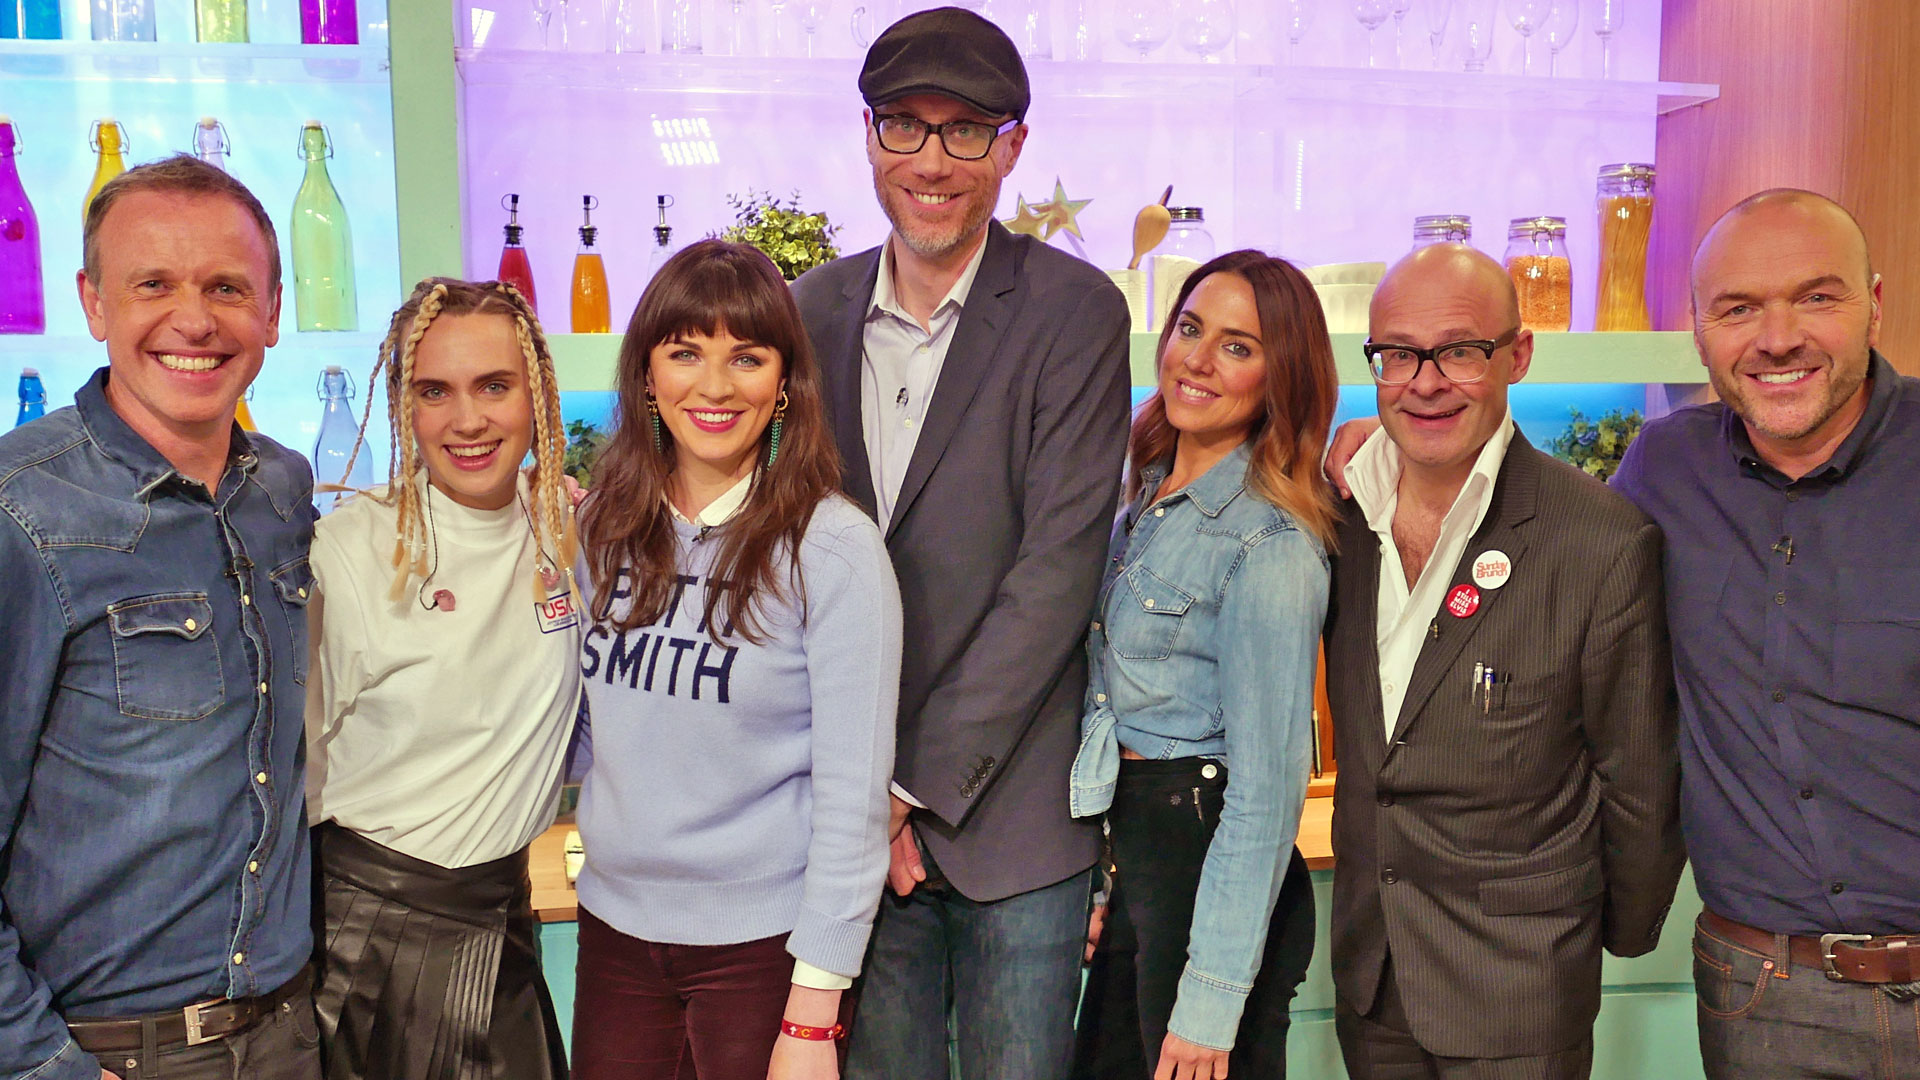 Stephen Merchant, Melanie C, Harry Hill, Aisling Bea, MØ